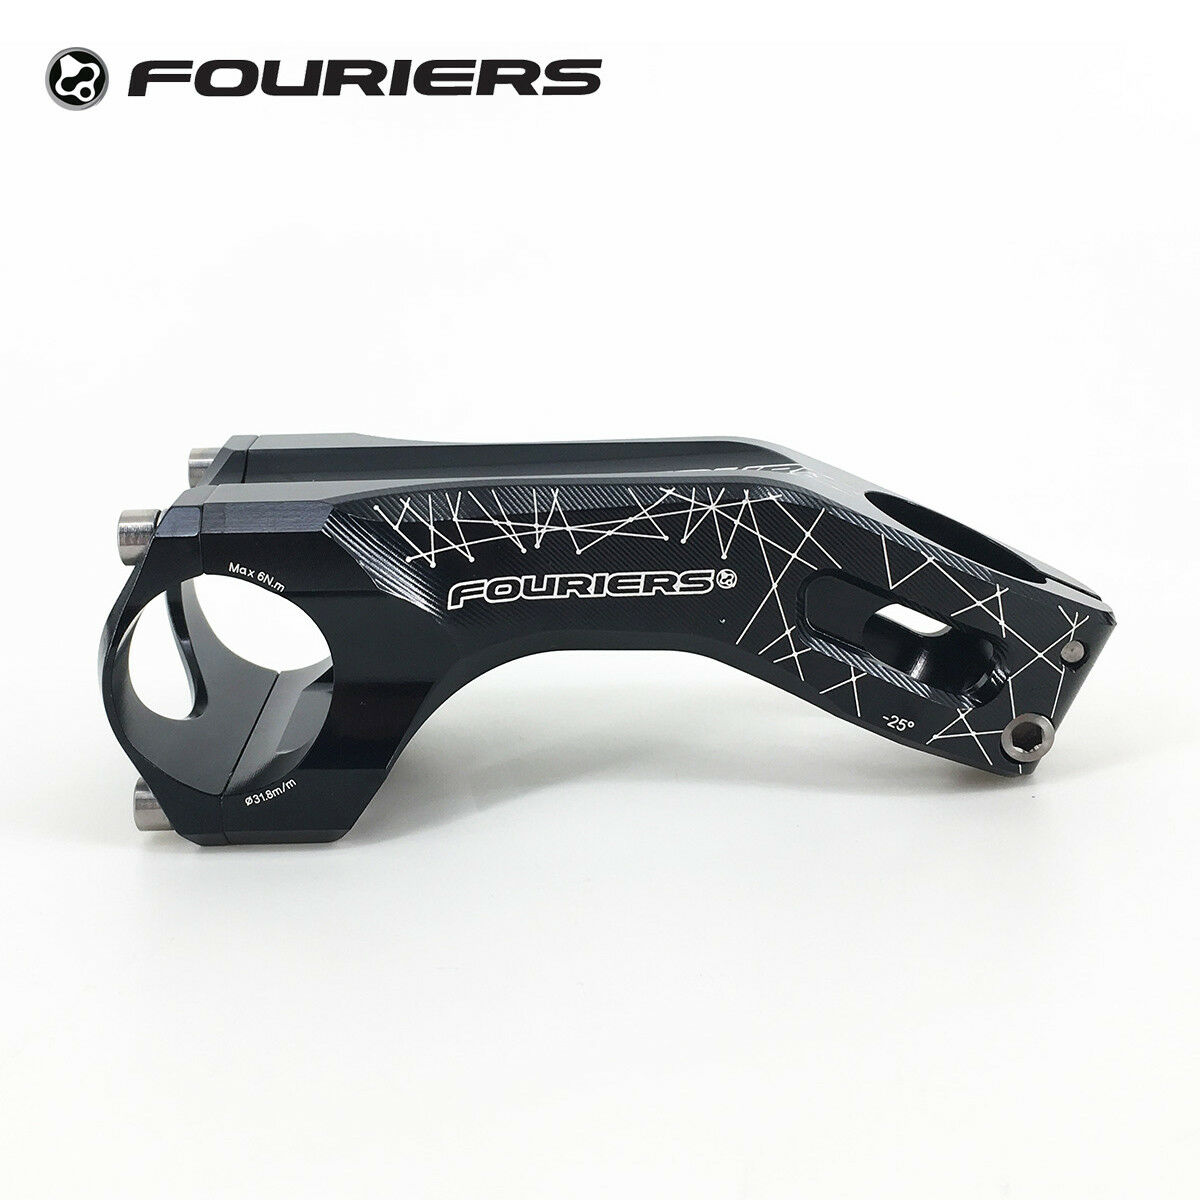 Fouriers Aluminum MTB Bike Stem 17 Degrees 25 Degrees XC Stems 1 1 8  28.6mm